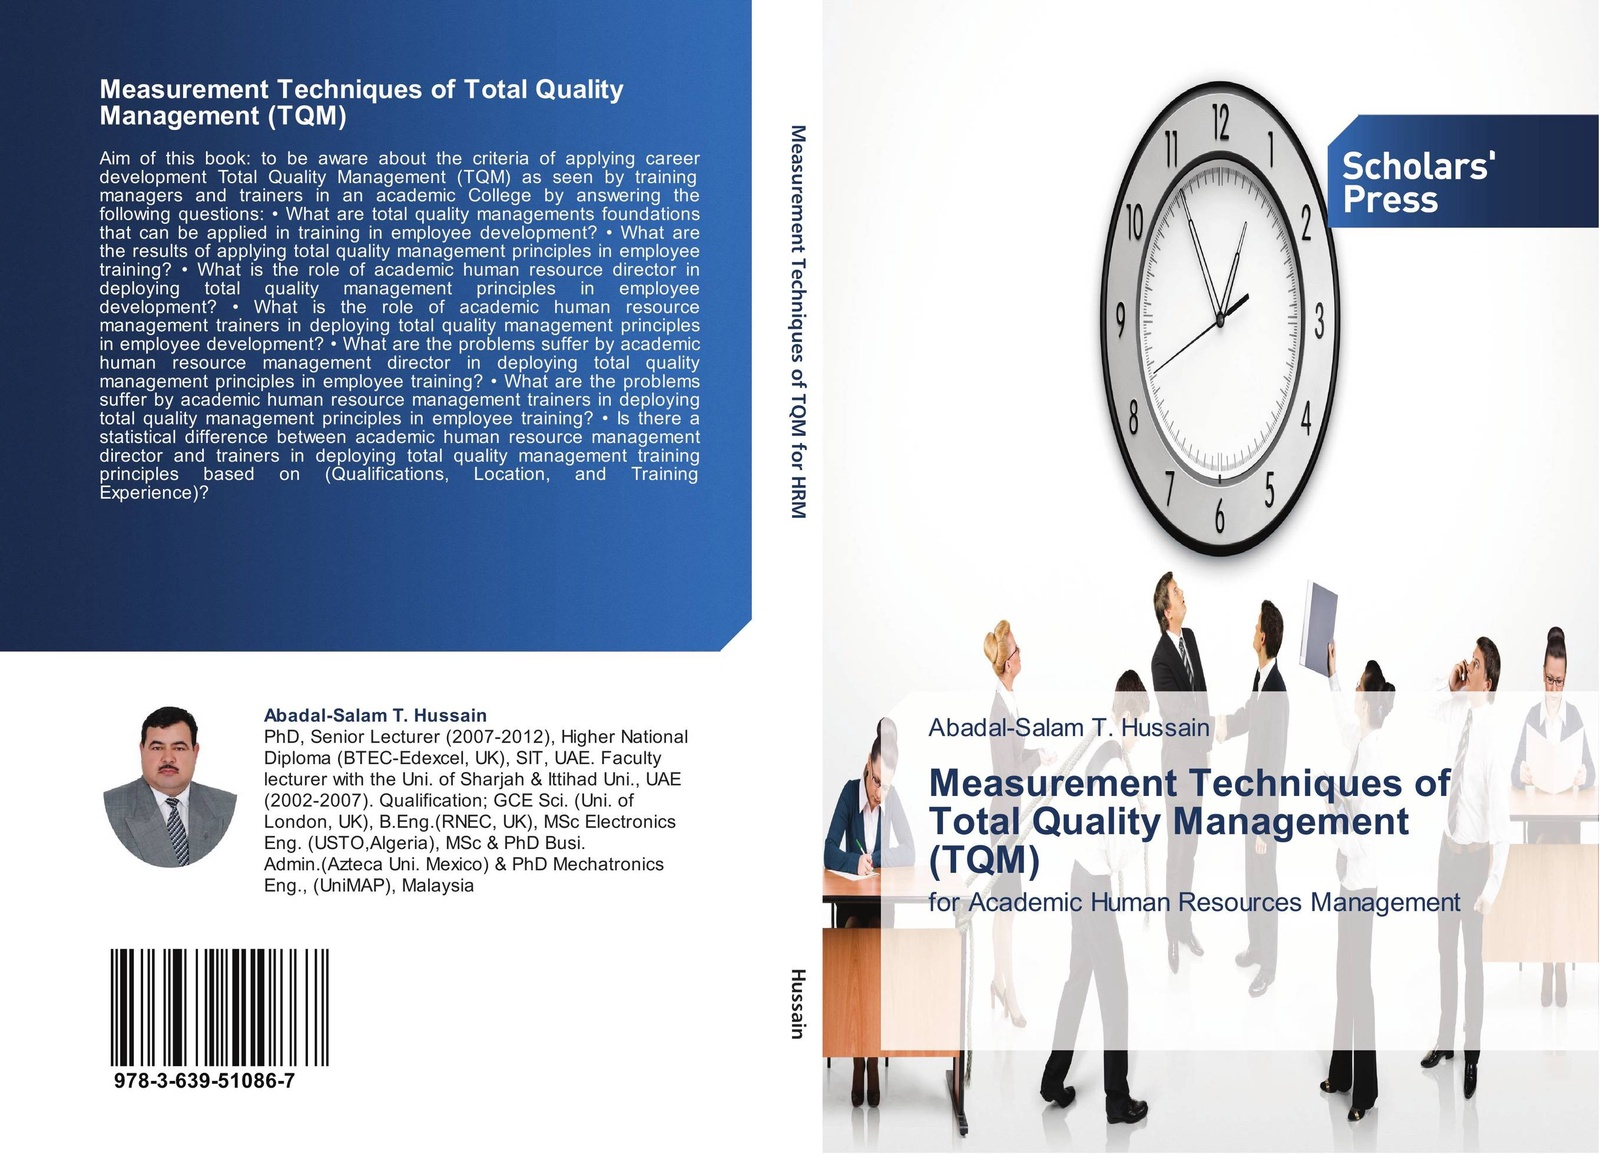 Abadal-Salam T. Hussain Measurement Techniques of Total Quality Management (TQM) abadal salam t hussain measurement techniques of total quality management tqm